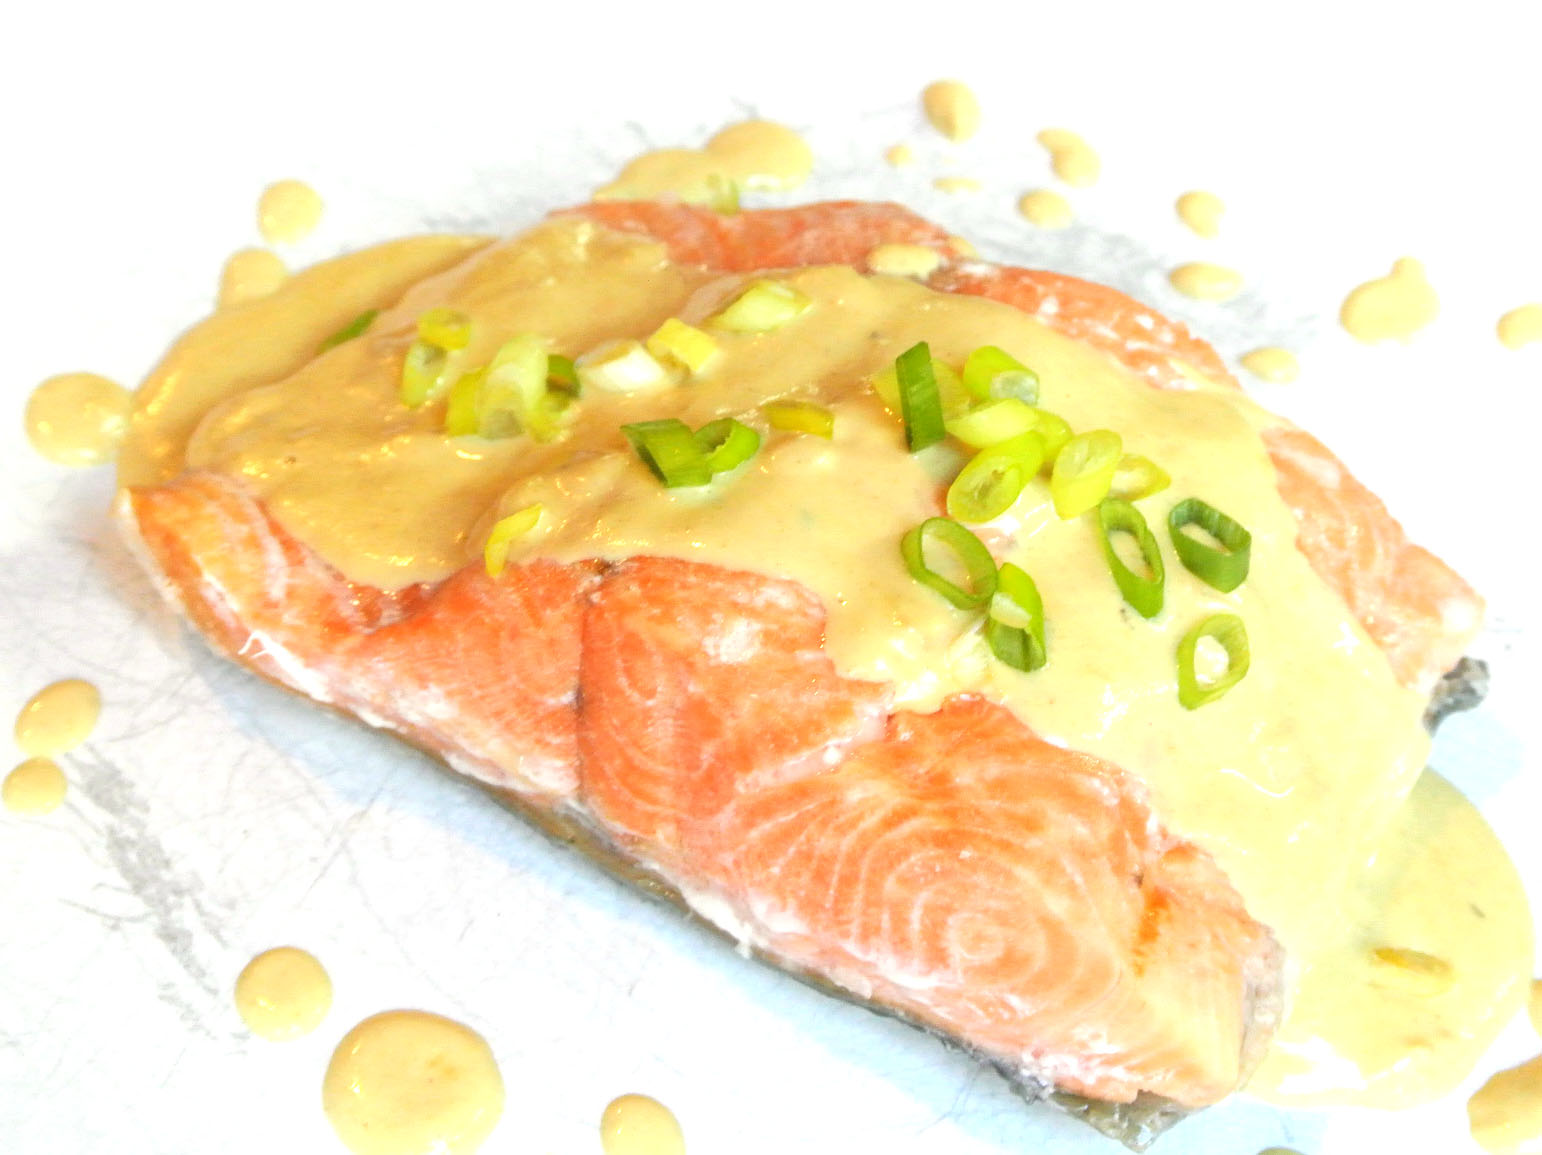 Gourmet Cooking For Two: Poached Salmon with Mustard Sauce